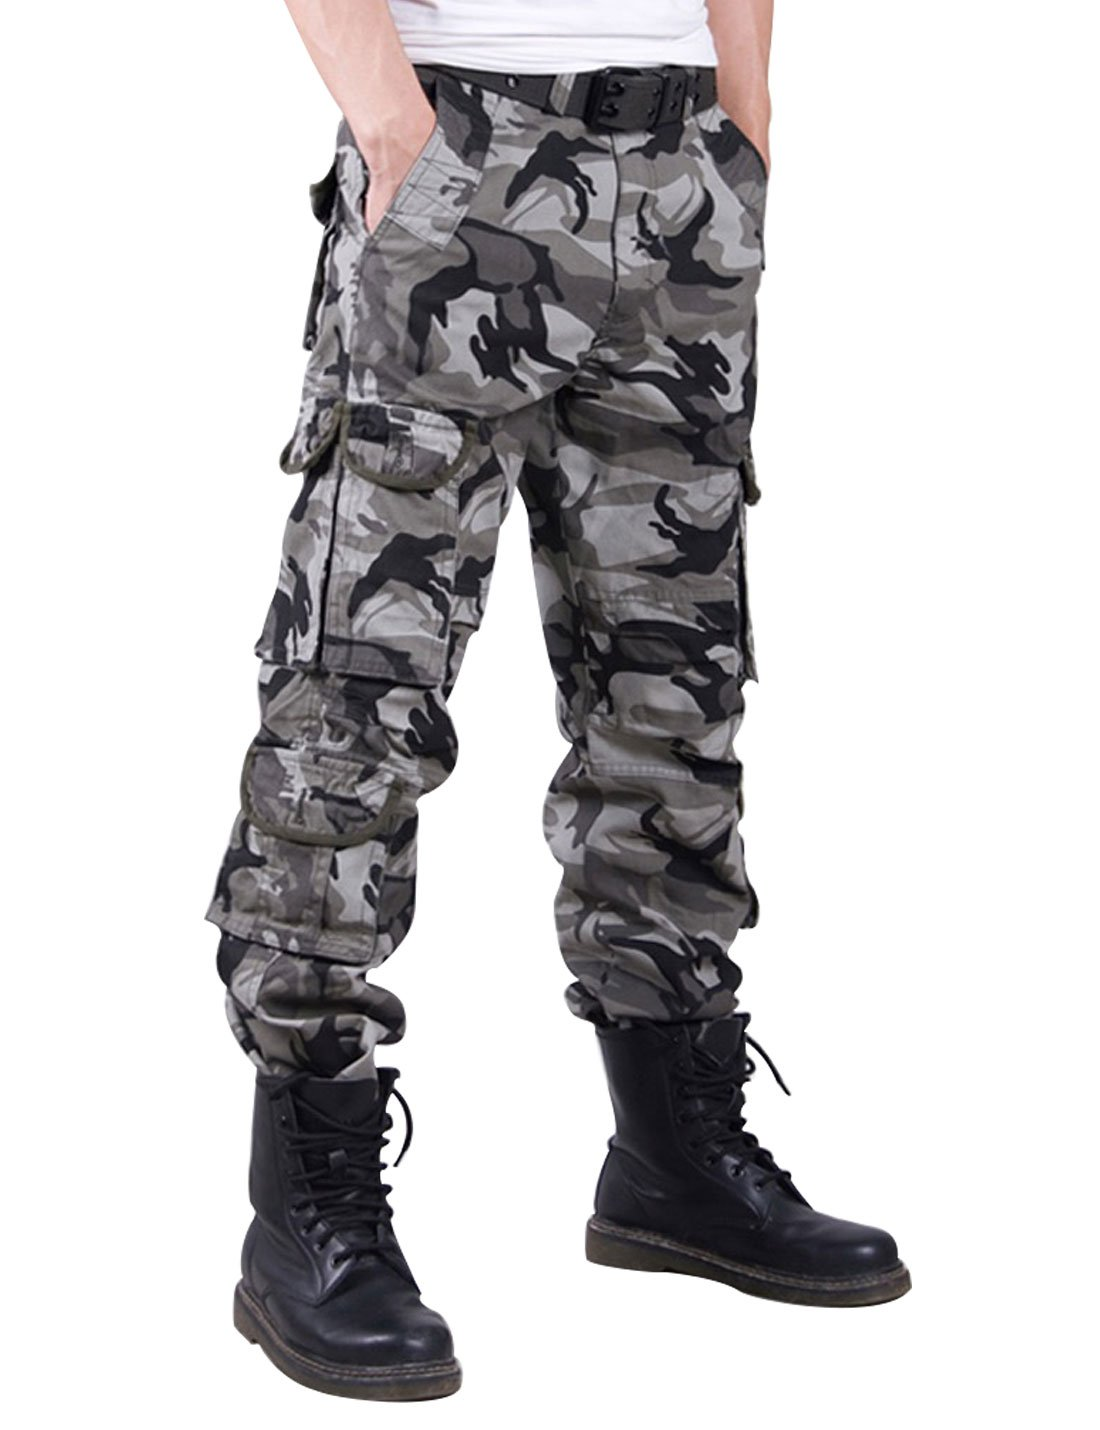 Gihuo Men's Casual Camouflage Military Army Style Cotton Cargo Pants with Multi Pockets (W29, Grey Camo)